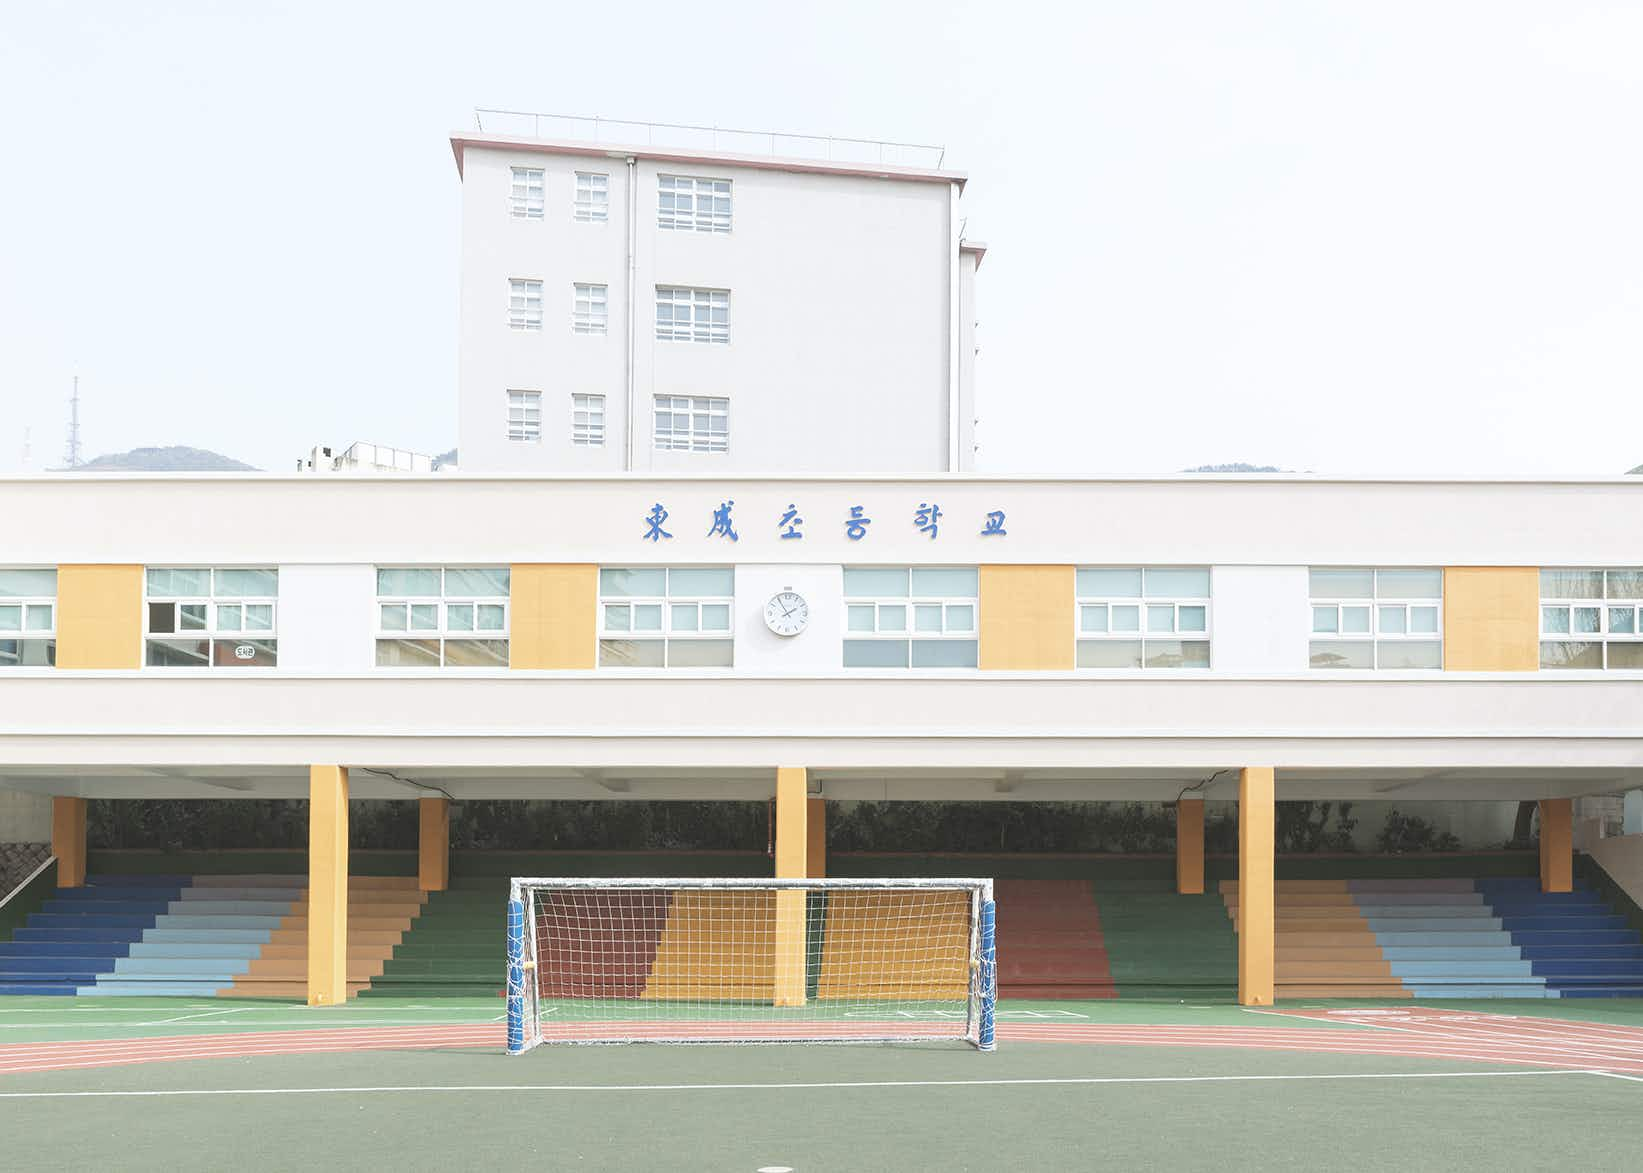 South Korea's pastel-perfect schoolyards captured in style